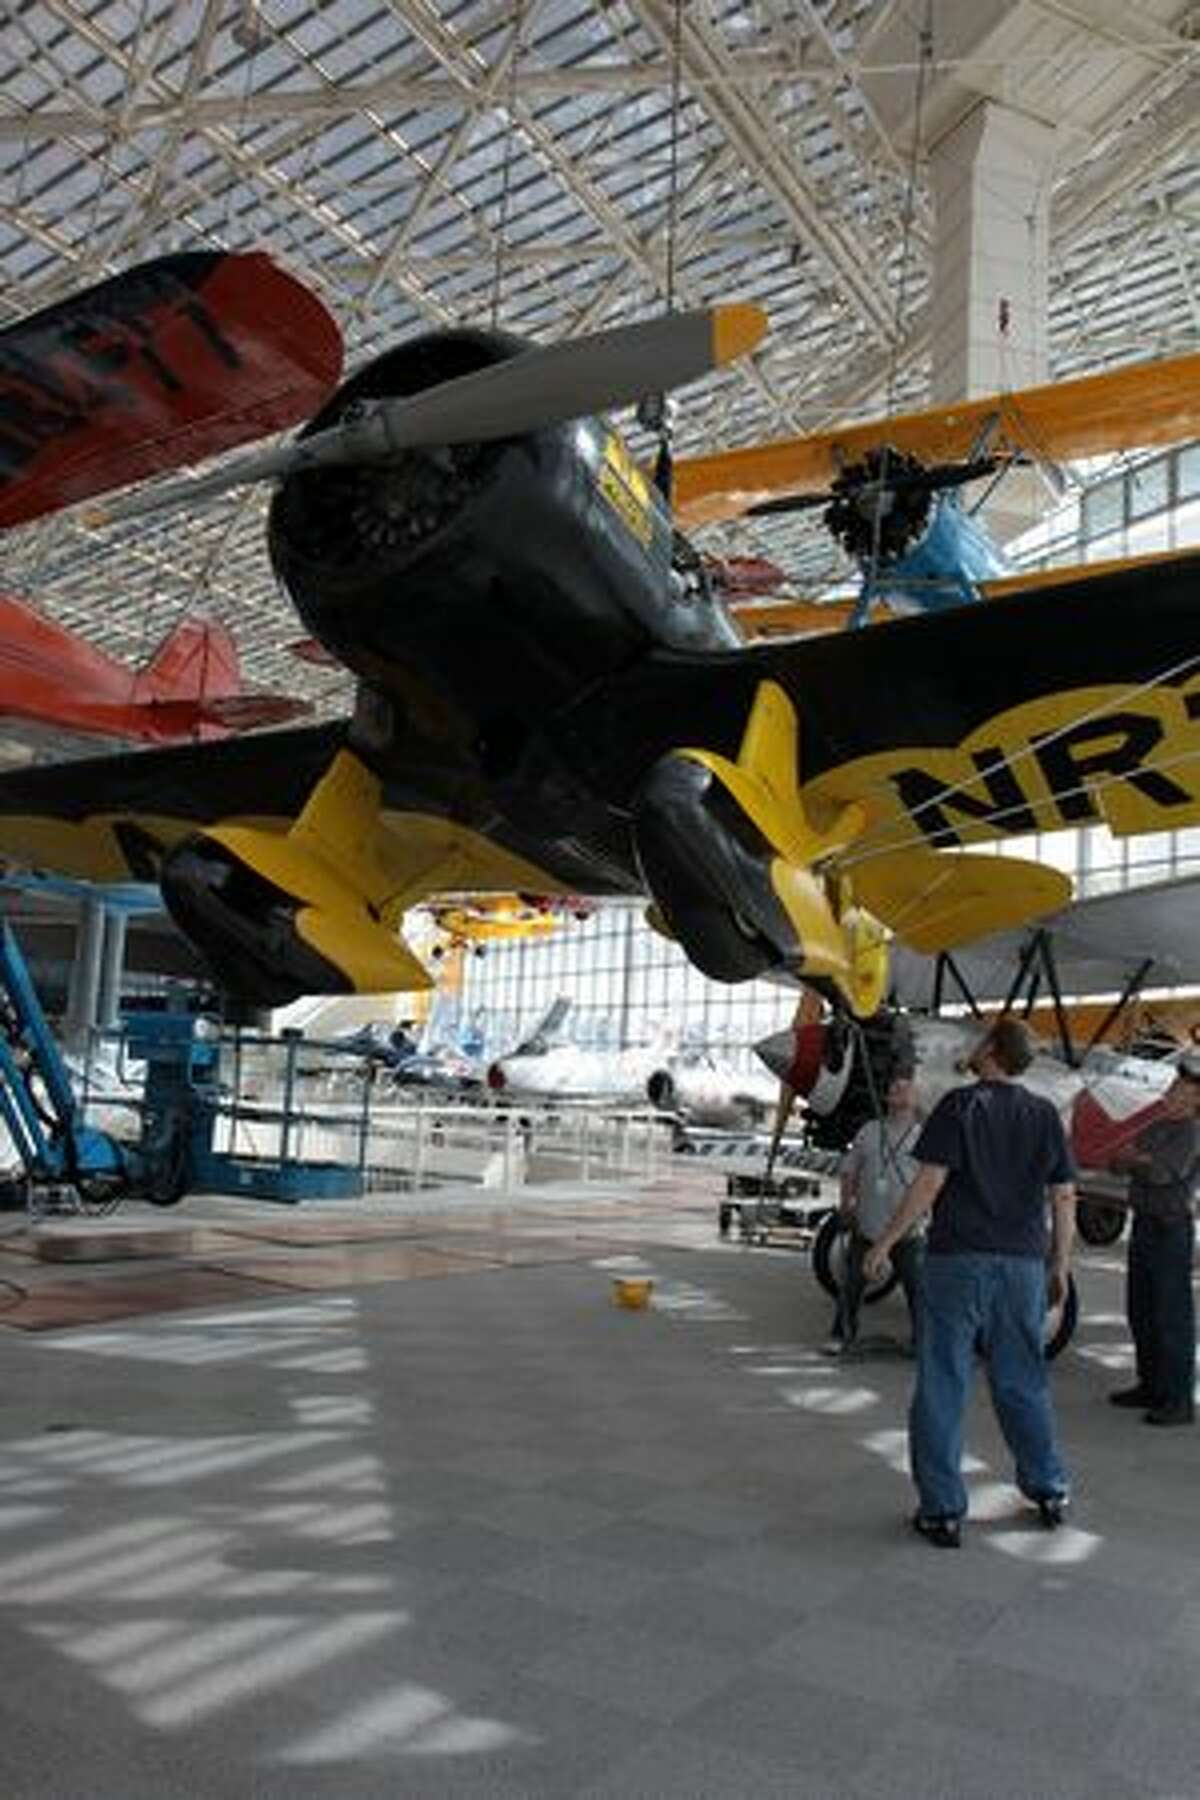 The Museum of Flight raises its Granville Brothers Gee Bee Z reproduction in its main hall, in Seattle, Wash.